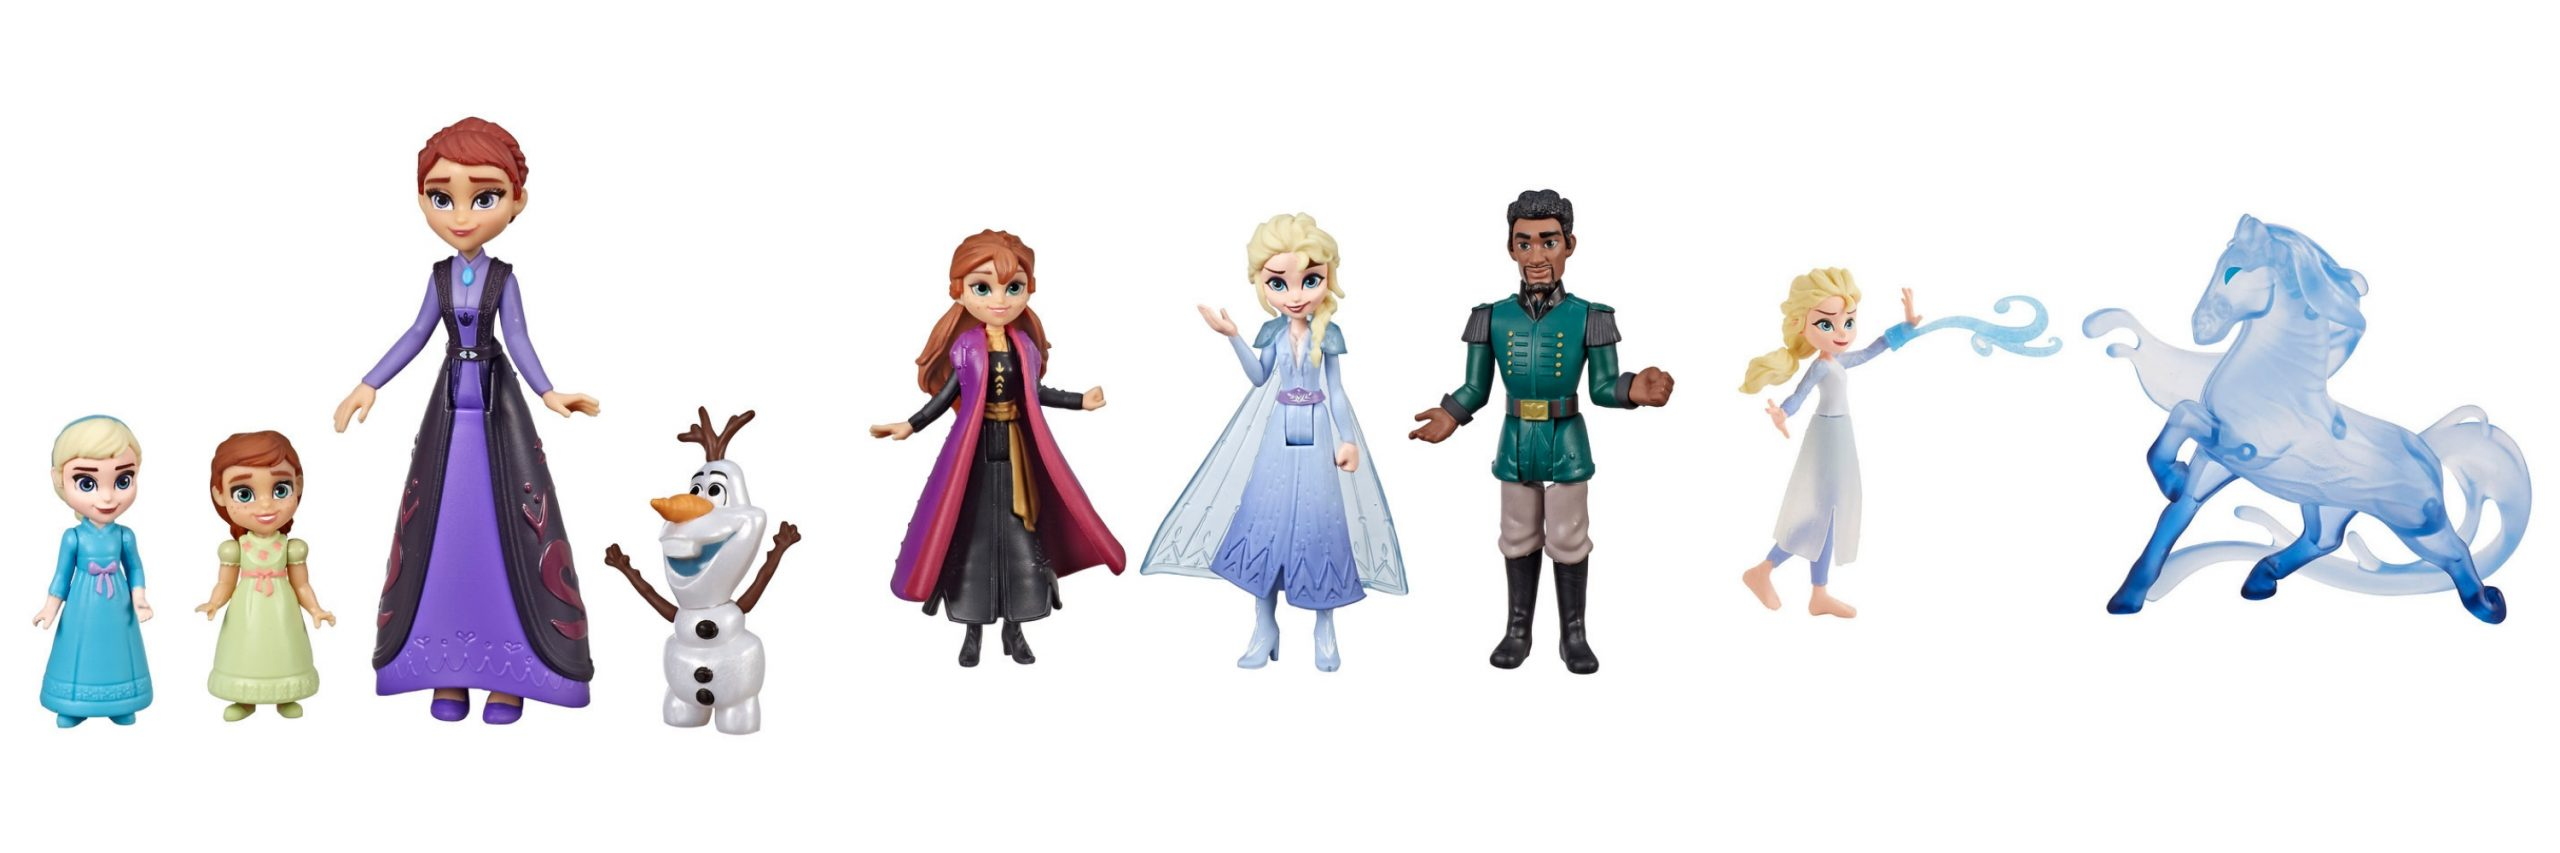 Looking for the best Frozen 2 dolls and toys? These are AMAZING!